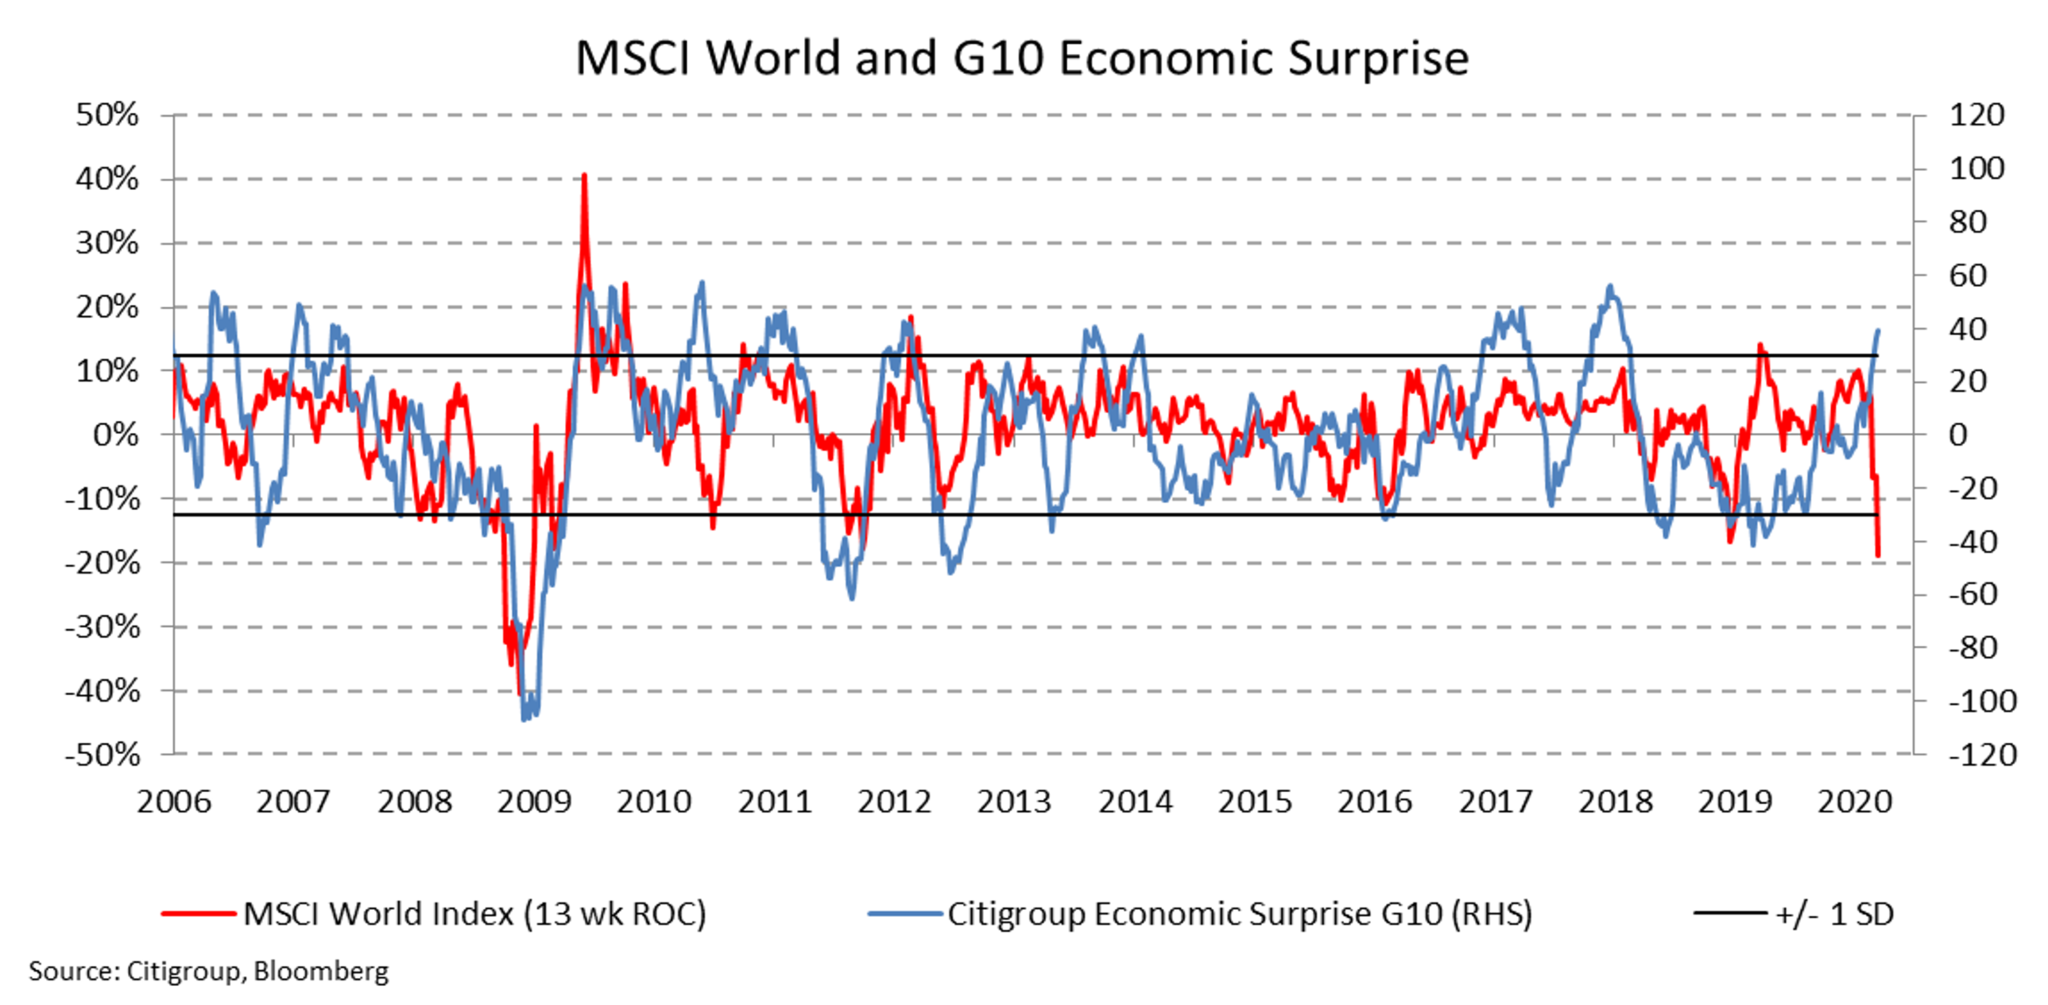 This chart shows that the overall global share market index has fallen by close to 40% over the last 13 weeks. However, the Citigroup Economic Surprise index has not reacted in the same way as yet, as it has done over past periods of market change. This indicates that global economic fundamentals remain intact and that the cause of the significant market falls are a direct relationship to COVID-19.